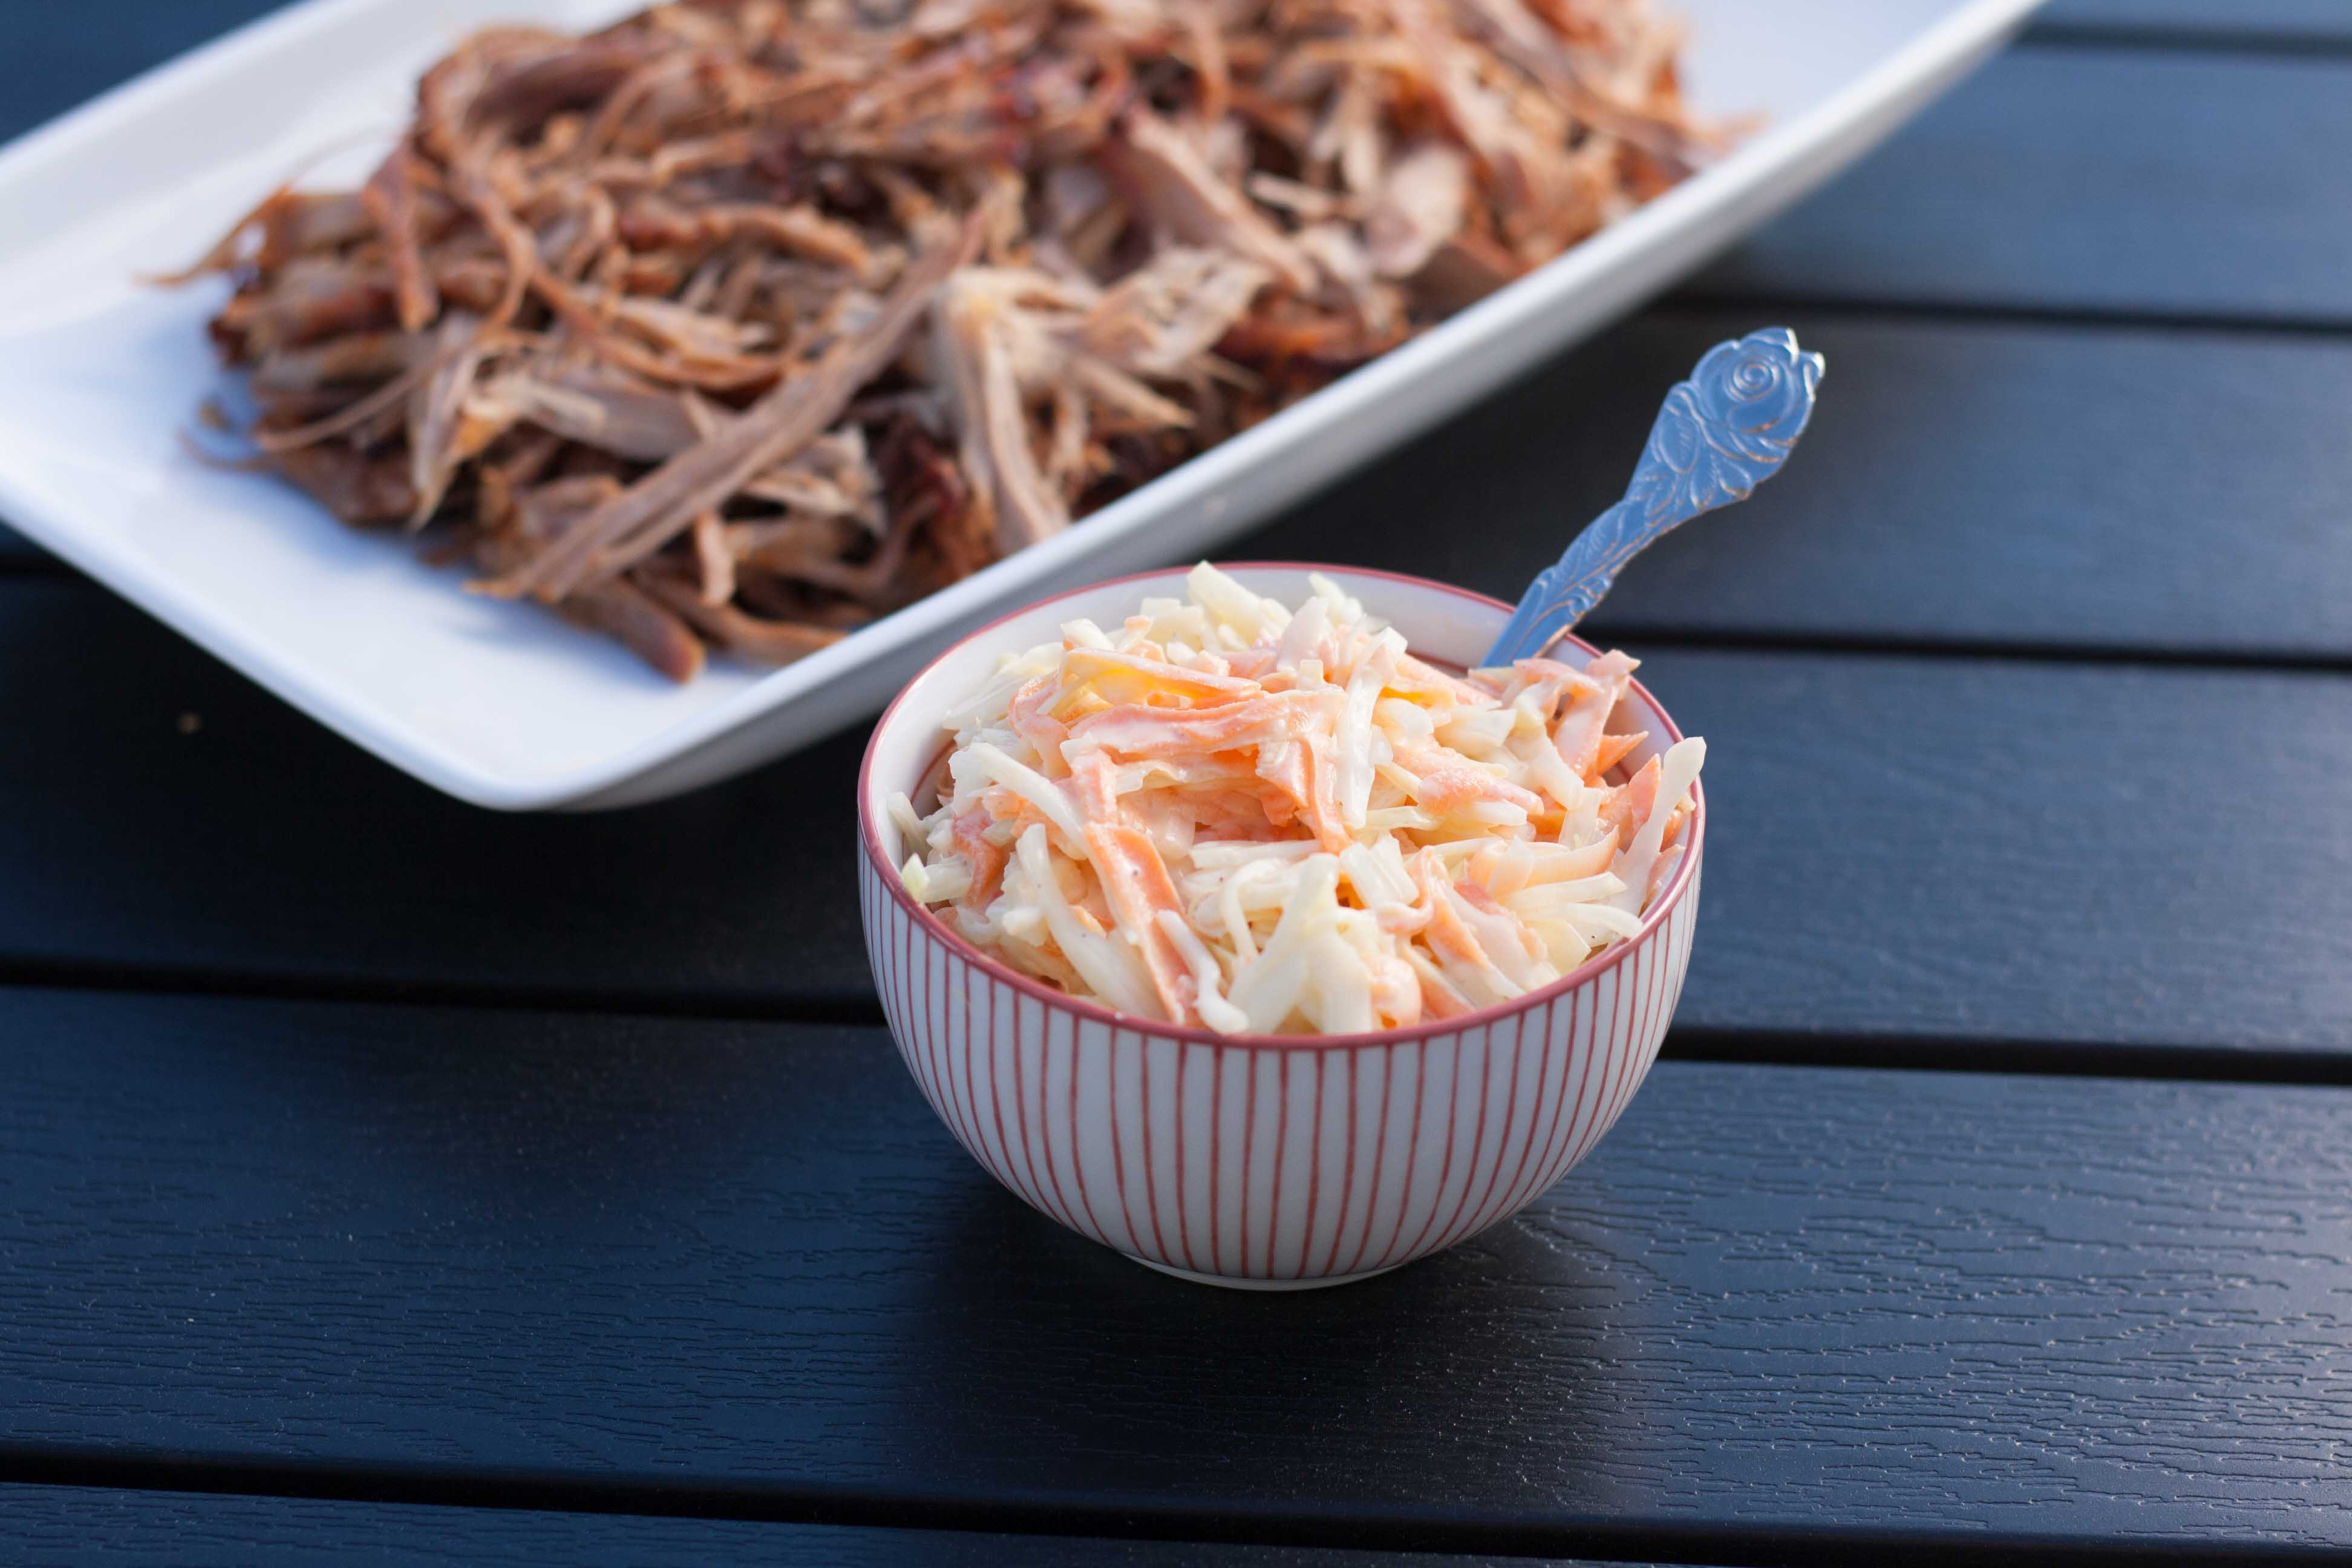 Recipe for Homemade Coleslaw